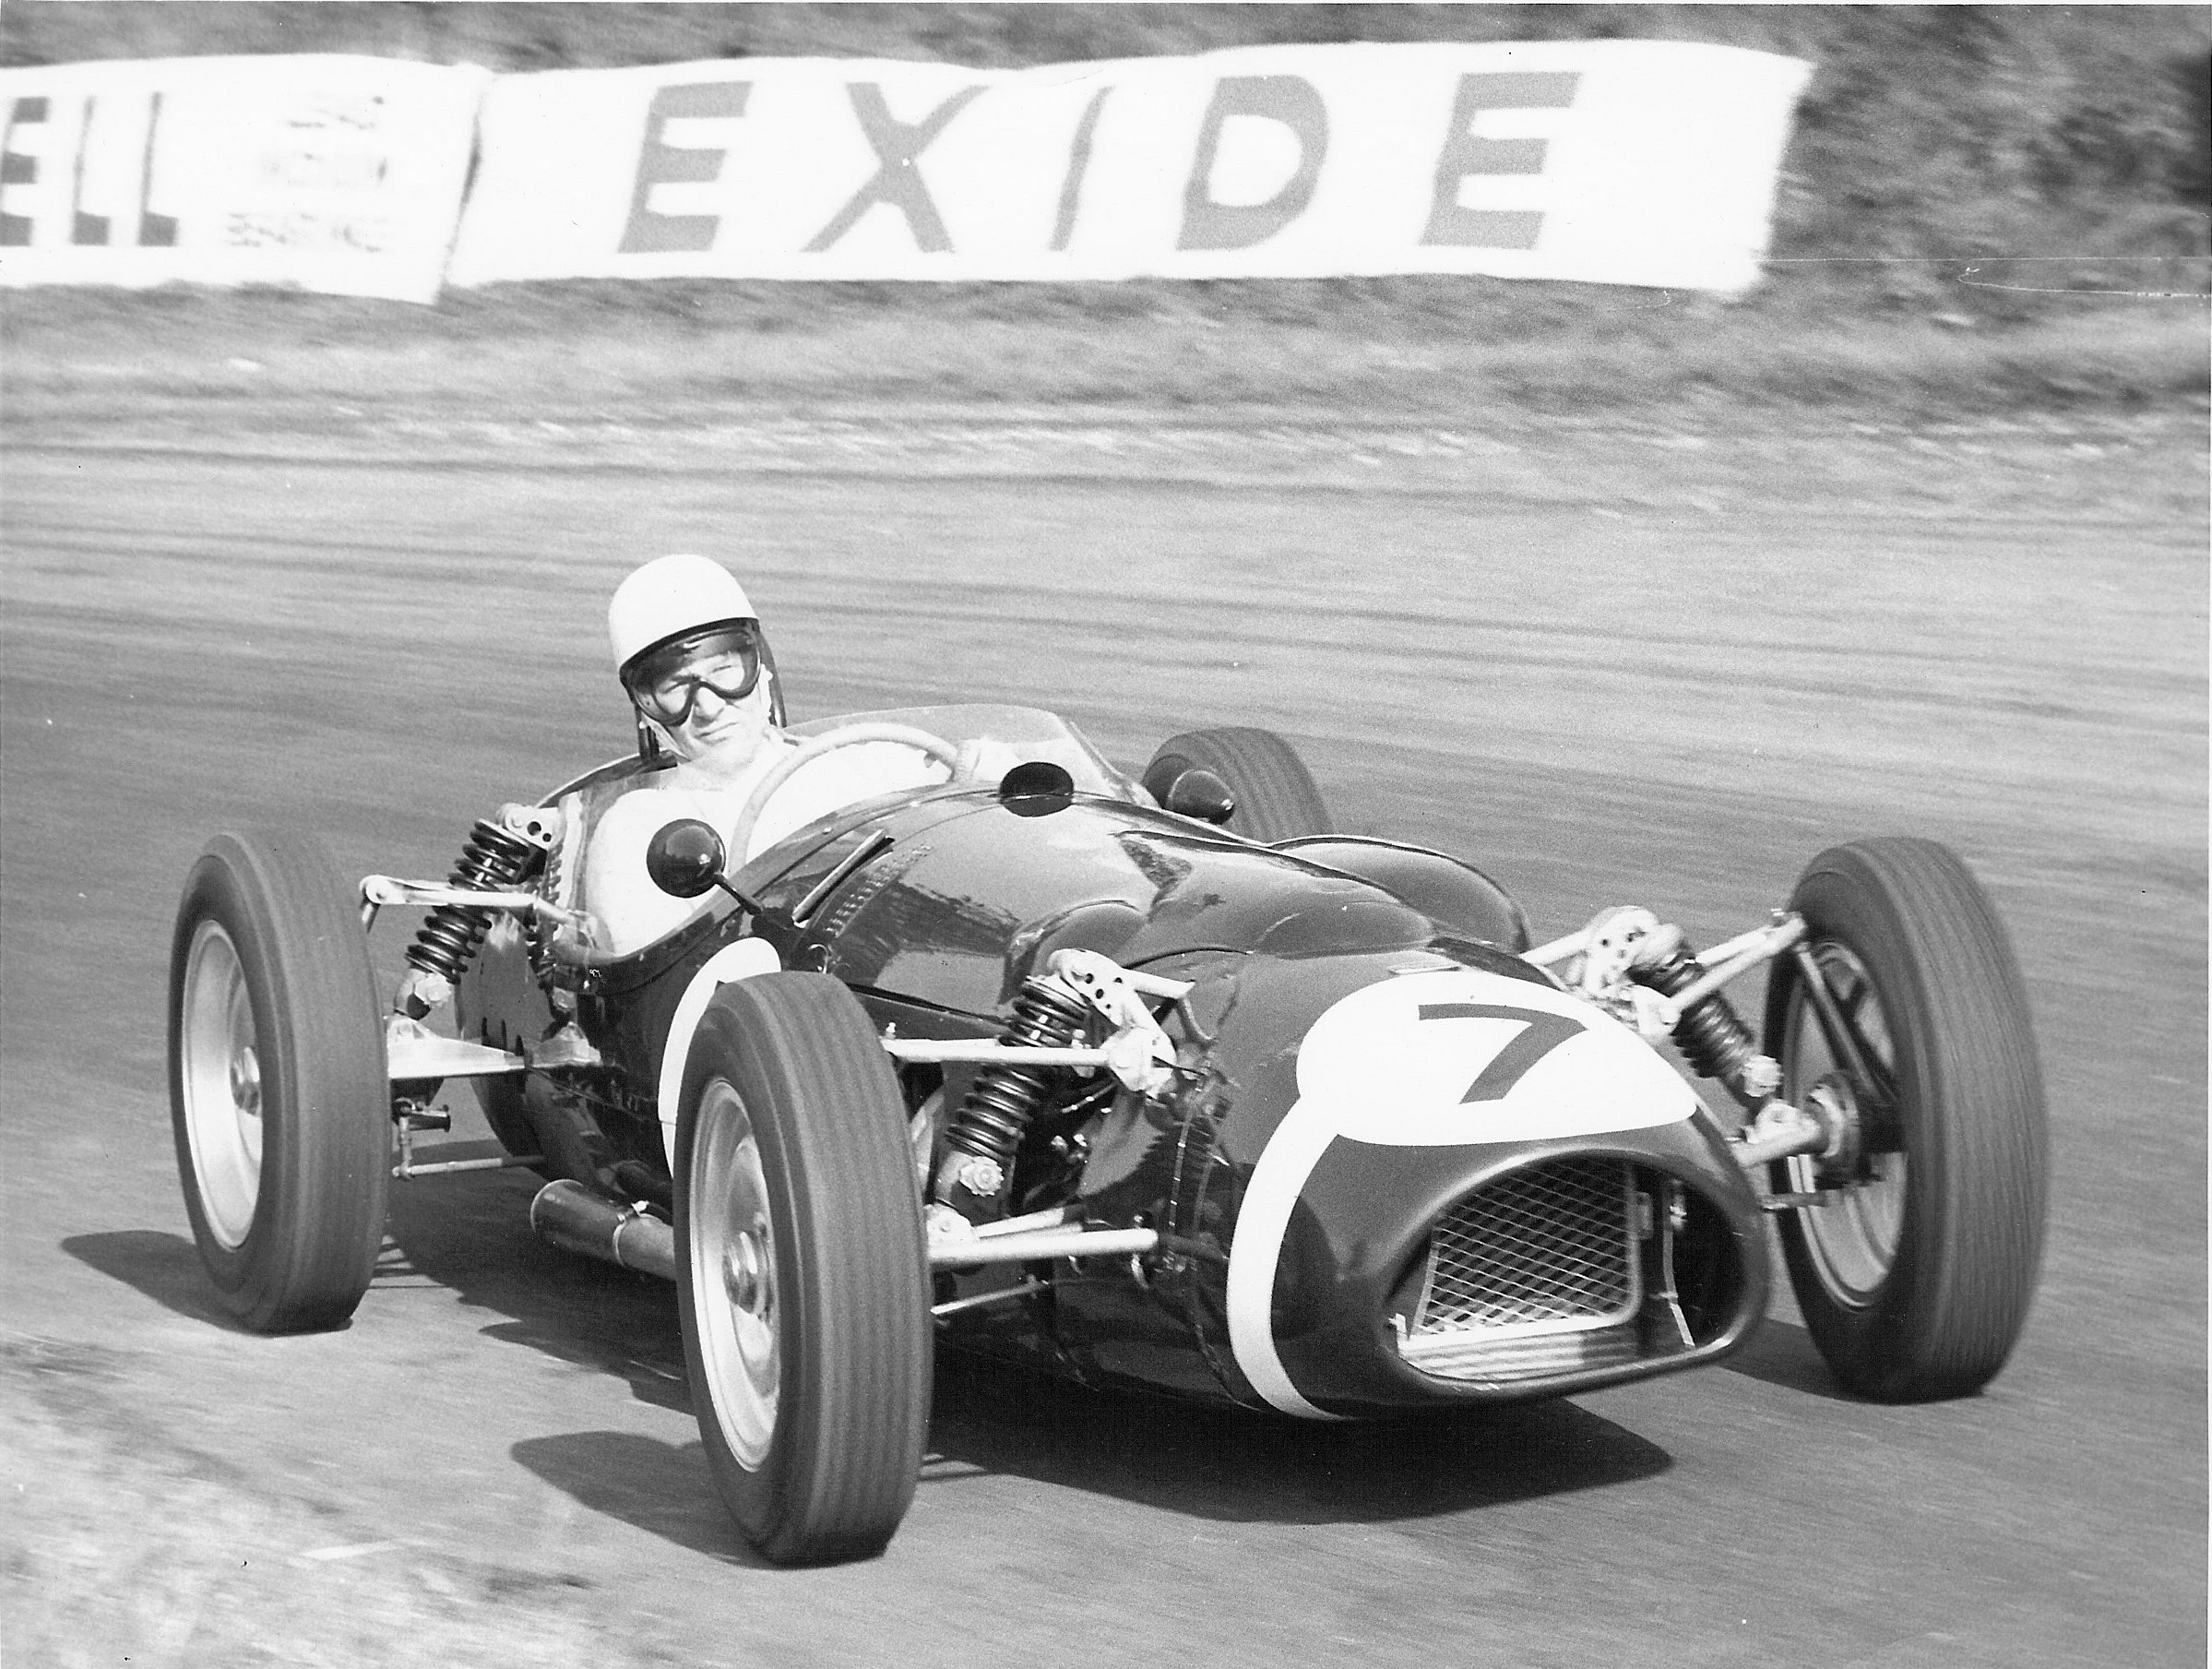 Stirling Moss in P99 at Oulton Park